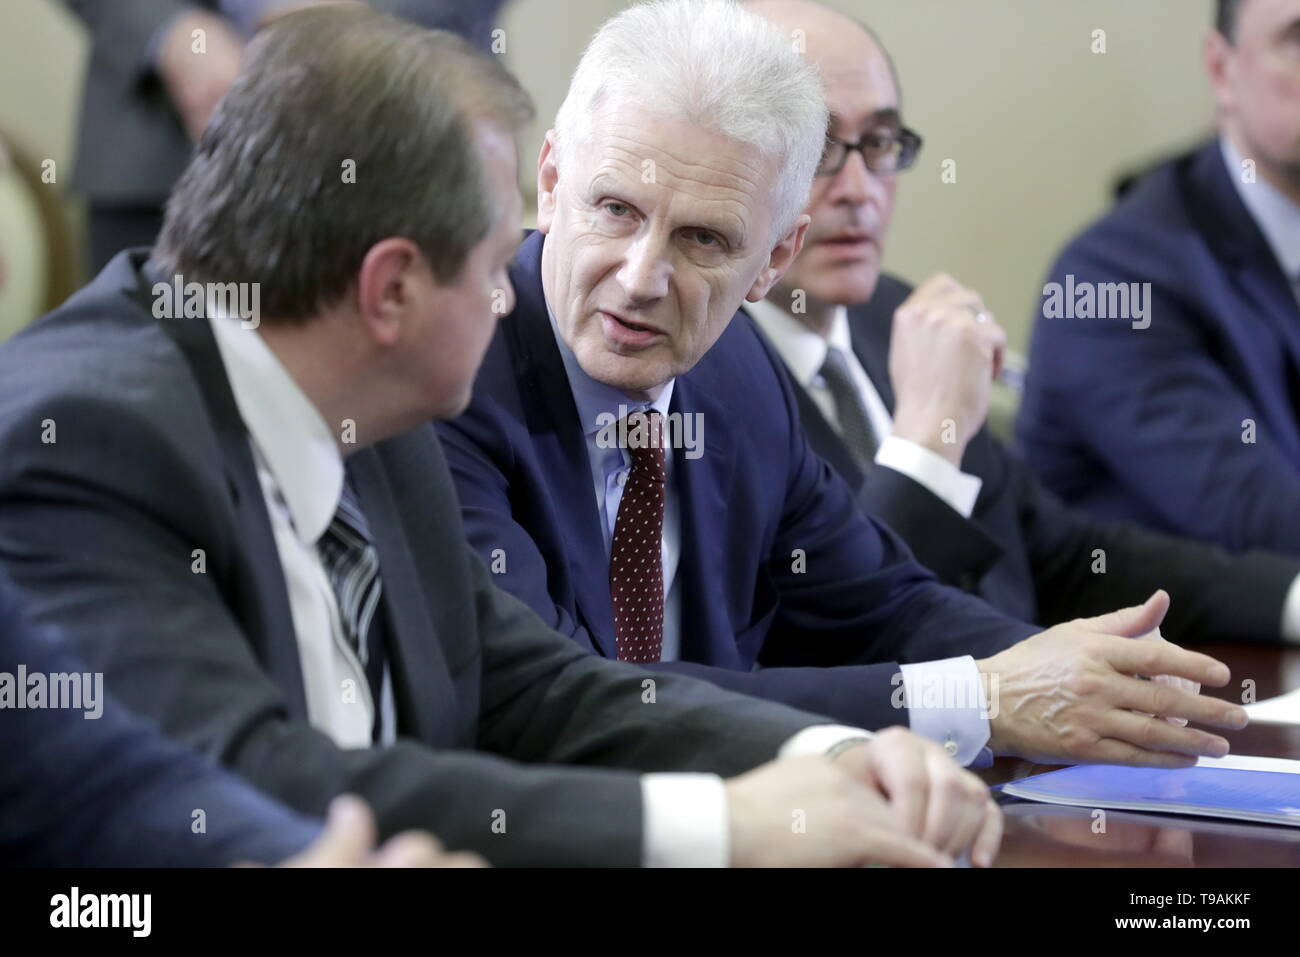 Sochi, Russia. 17th May, 2019. SOCHI, RUSSIA - MAY 17, 2019: Konstantin Krutovsky, professor of Genetics at the University of Gottingen (Germany), Russian Presidential Aide Andrei Fursenko, Alexander Kabanov (L-R), an honoured professor at the University of North Carolina (USA), during a meeting of Russia's President Vladimir Putin with the winners of 'megagrants' for scientific research. Mikhail Metzel/TASS Credit: ITAR-TASS News Agency/Alamy Live News Stock Photo